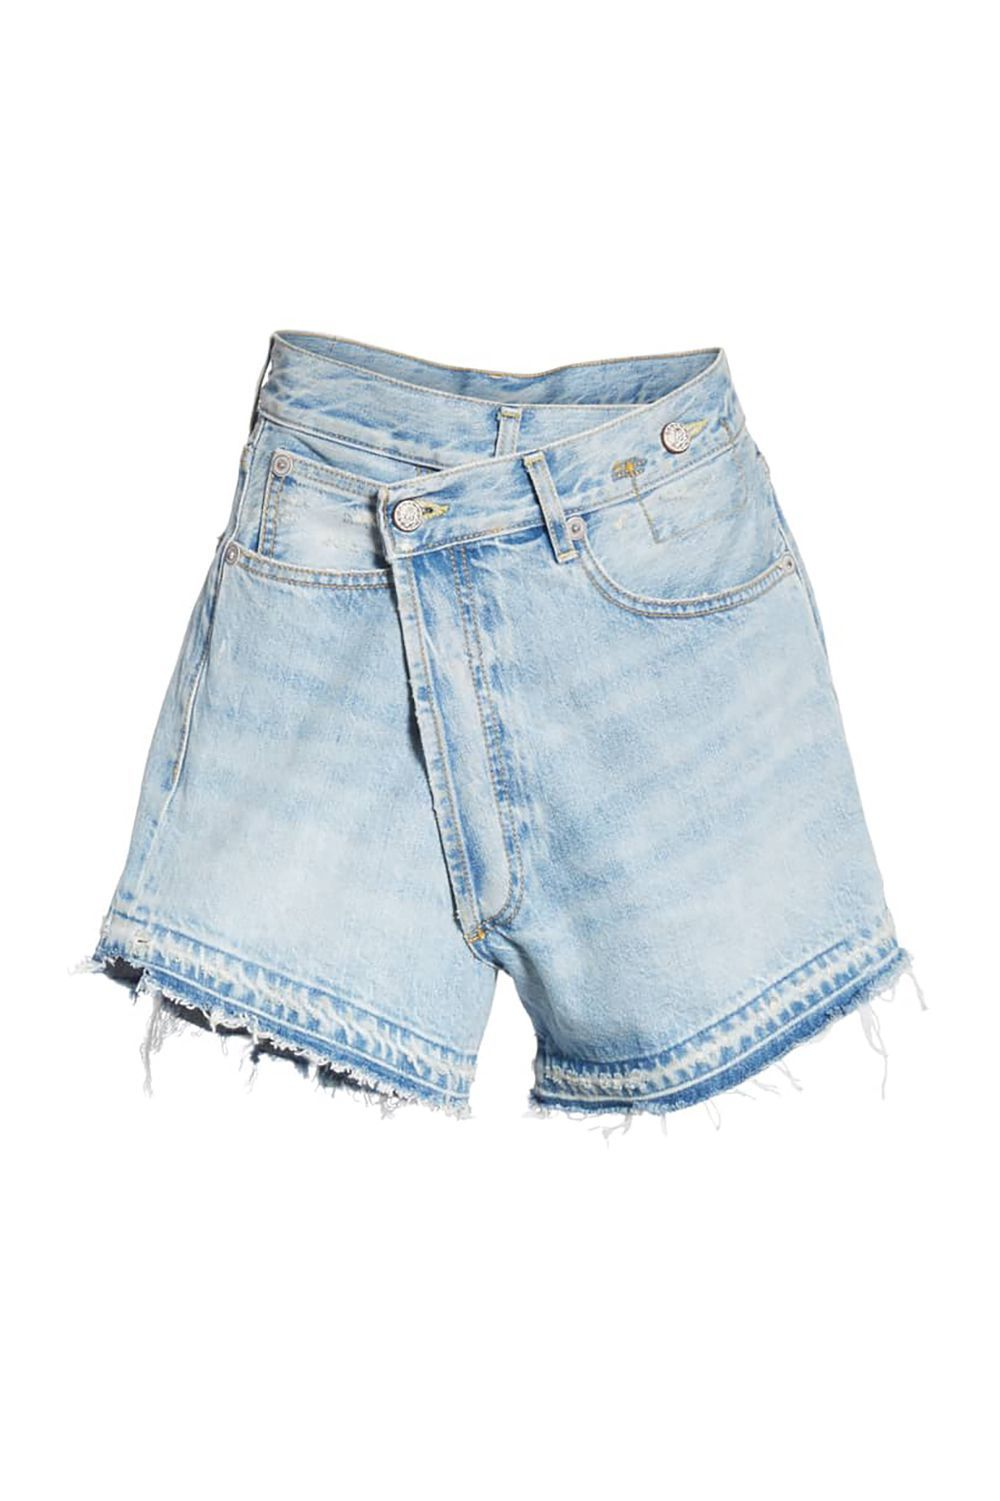 7873910ebf75 12 Best Denim Shorts of 2019 for Women - Distressed